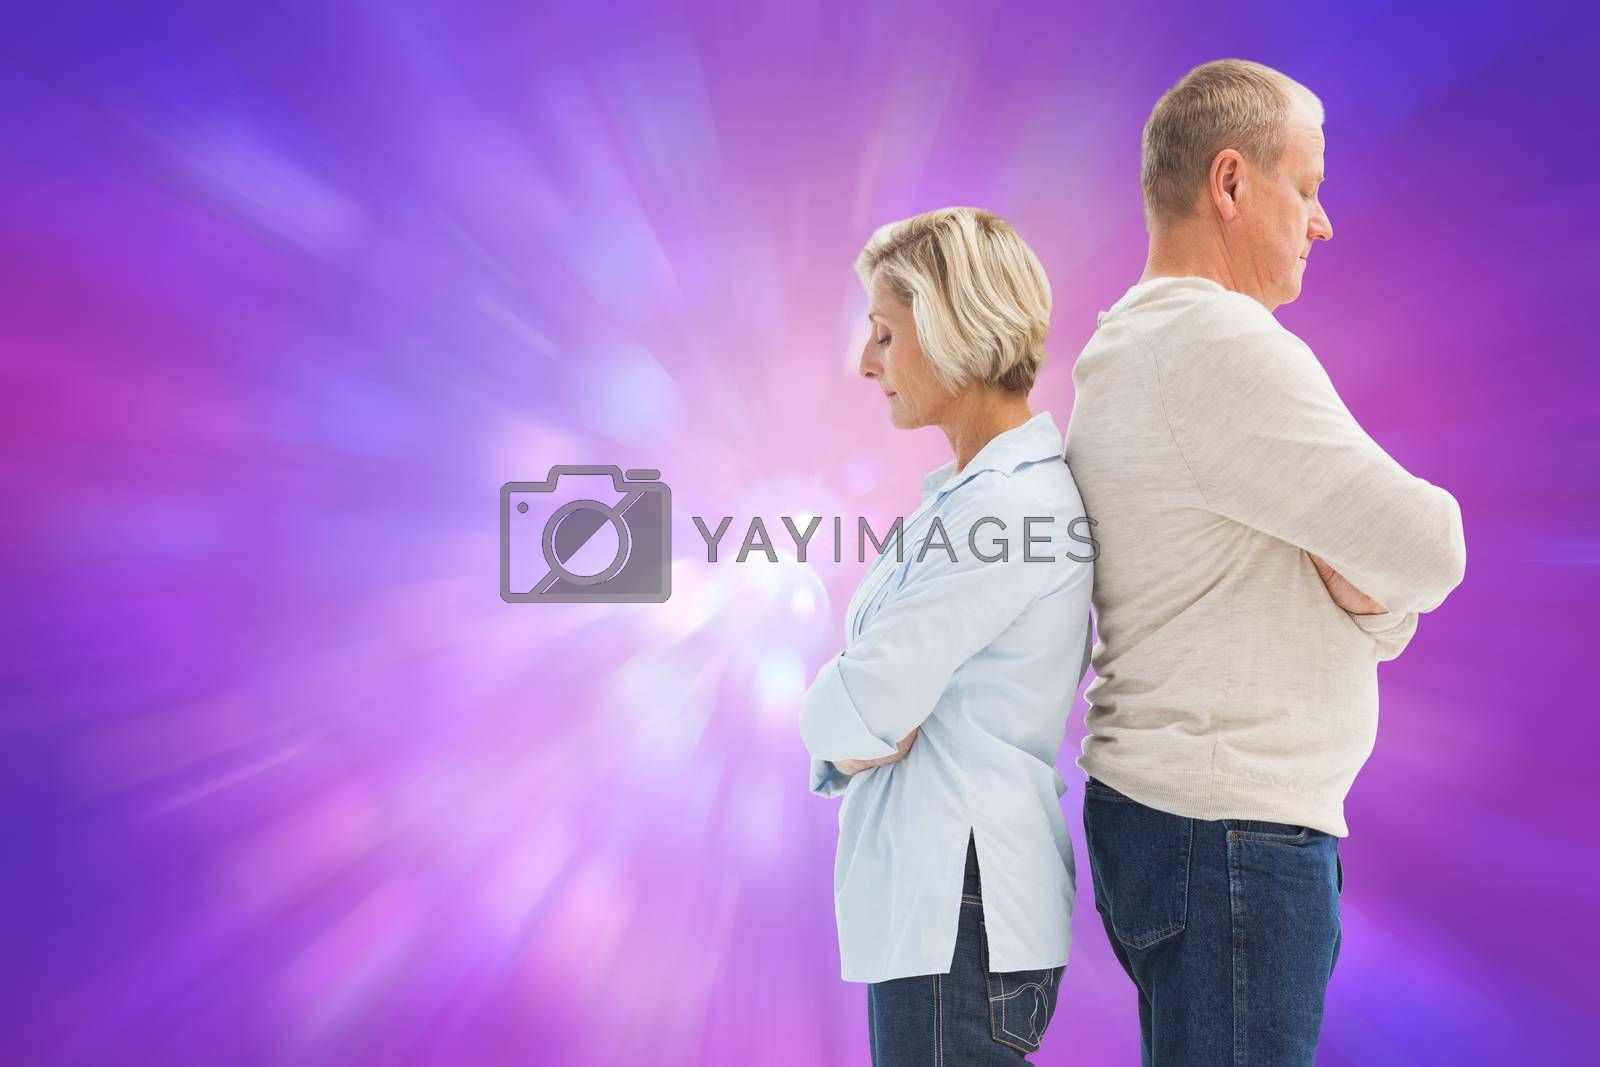 Unhappy couple not speaking to each other  against purple abstract light spot design